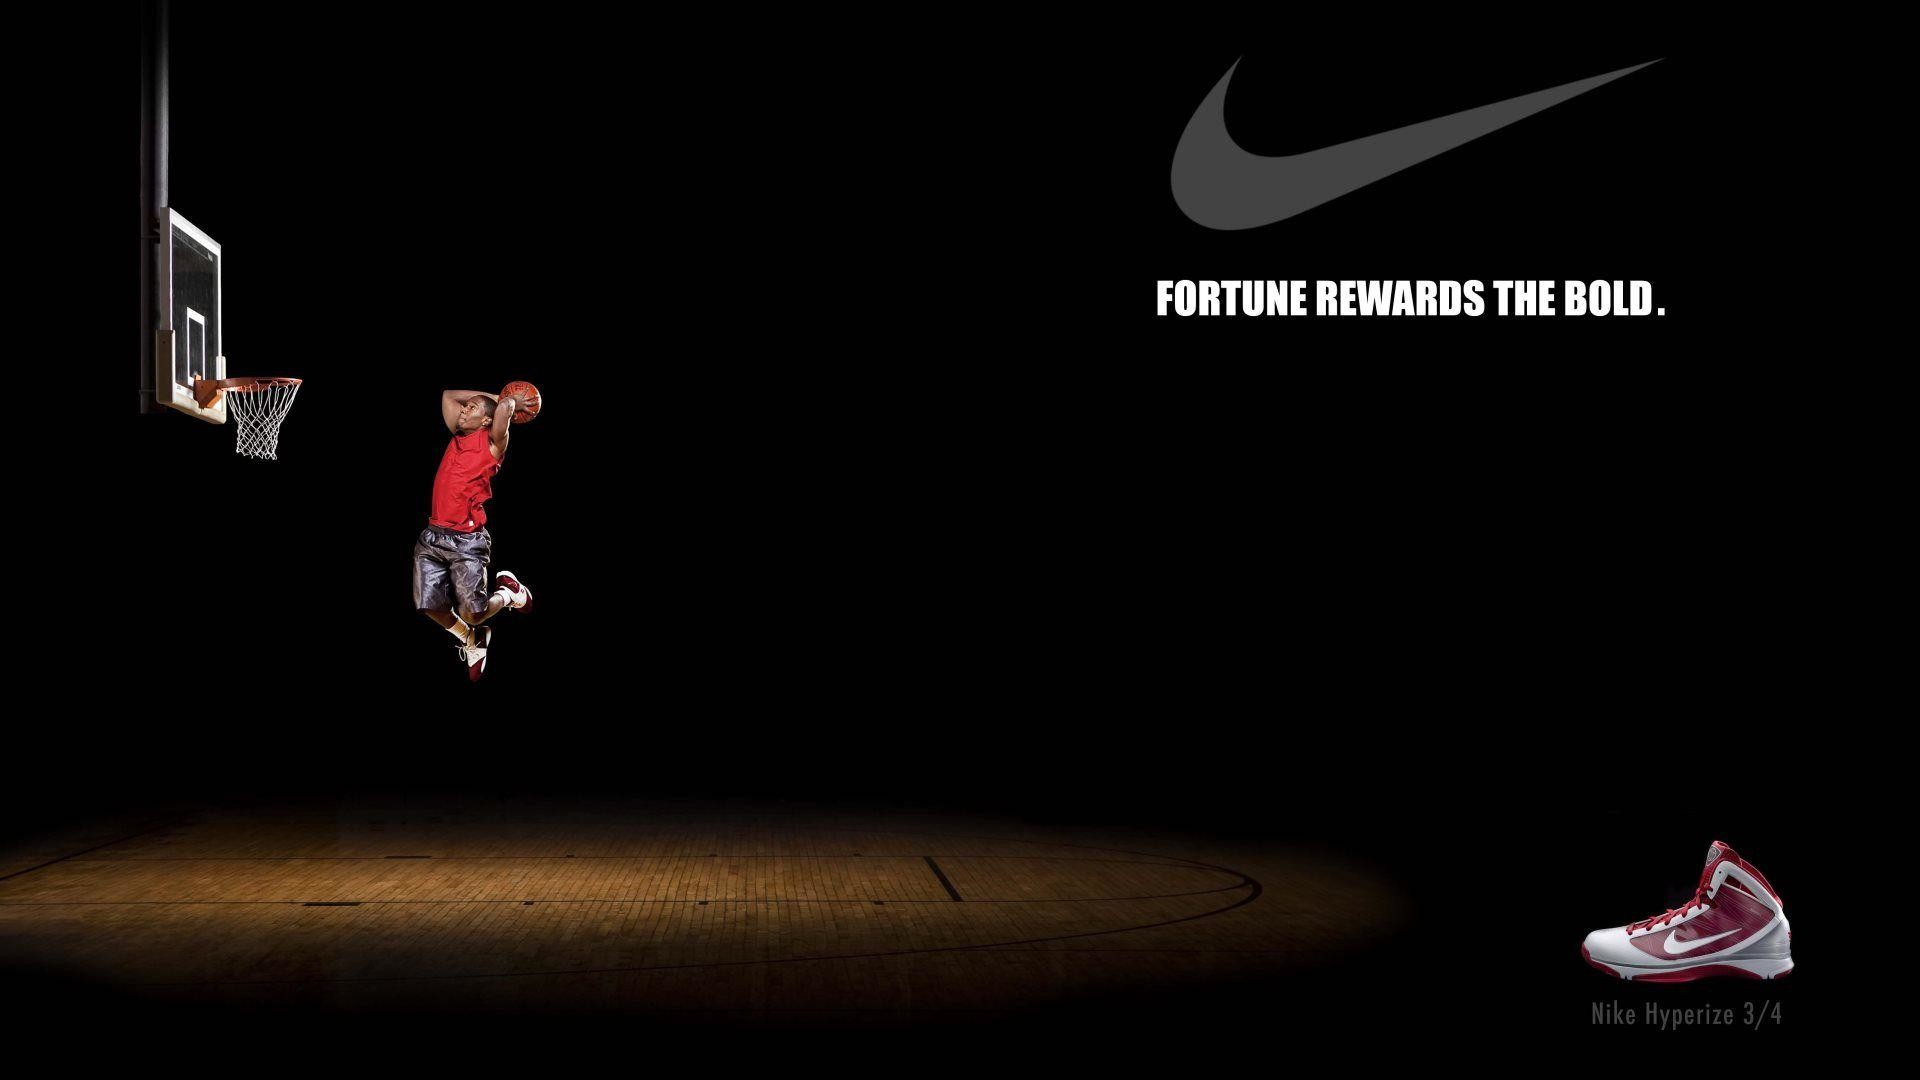 nike basketball wallpapers 2018 75 background pictures